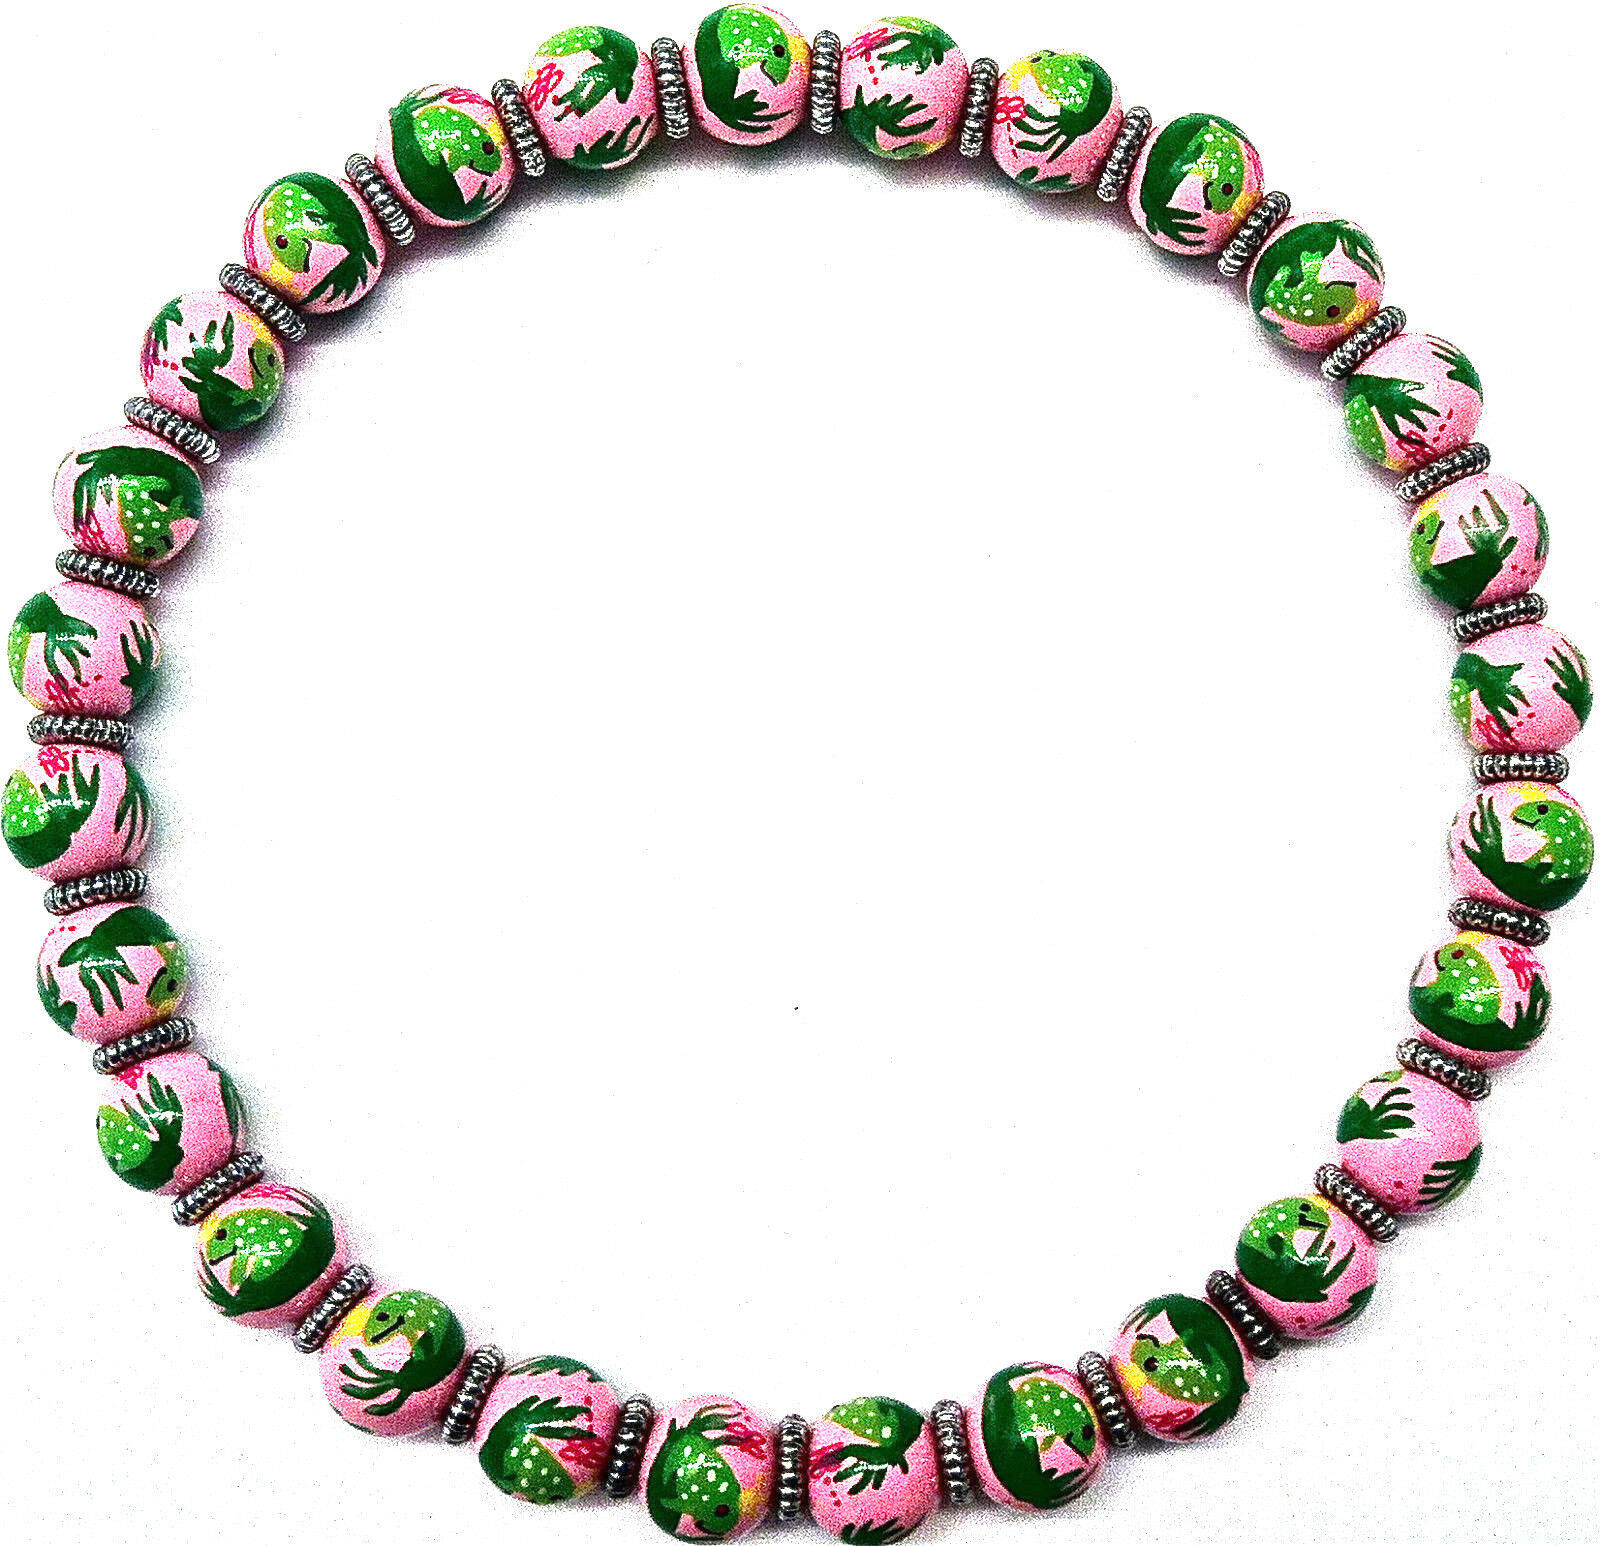 NEW IN POUCH ANGELA MOORE PINK BEADED NECKLACE WITH GREEN FROGS